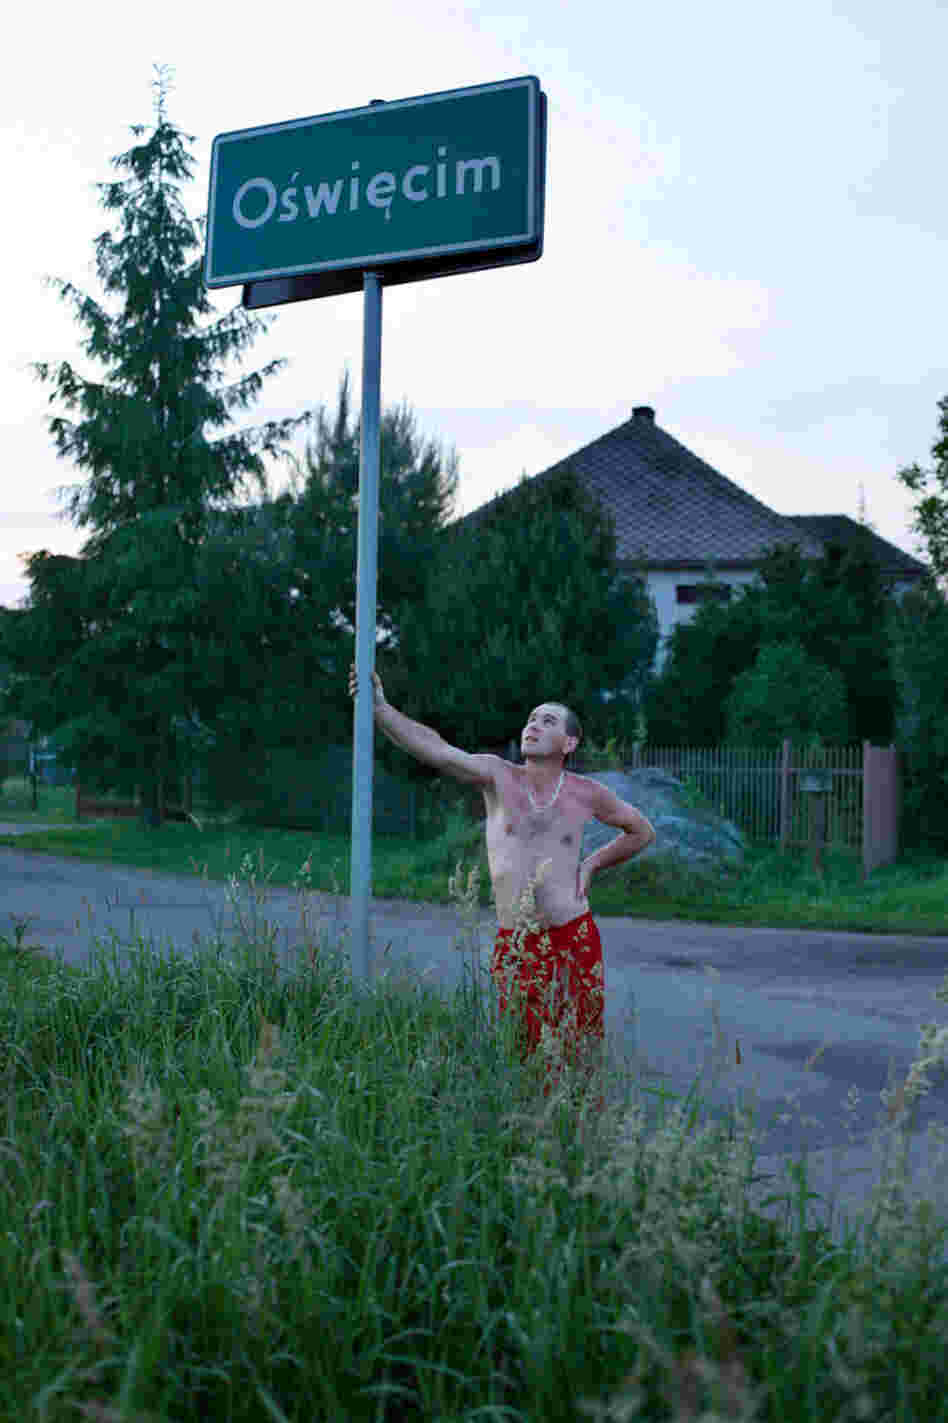 A man from a village bordering Oswiecim leans on a city limits sign for a portrait.